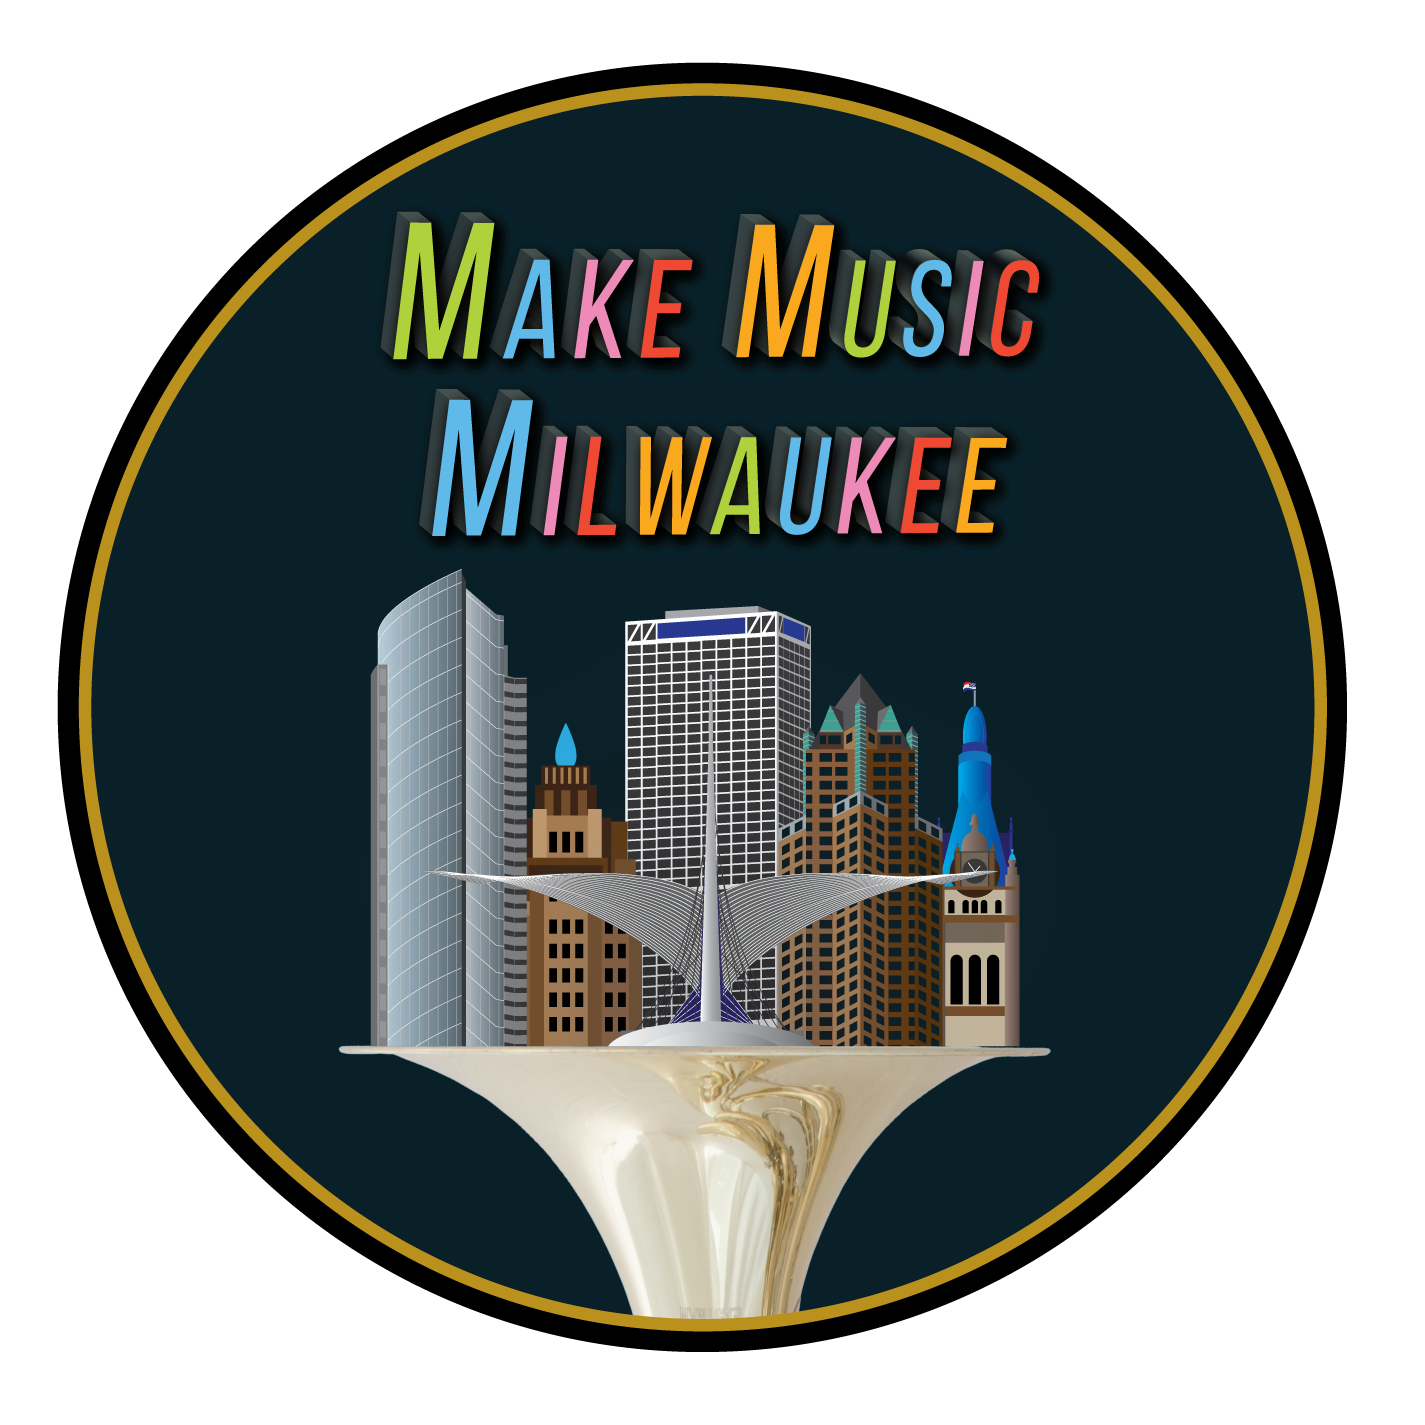 Band clipart world music day. Make milwaukee june